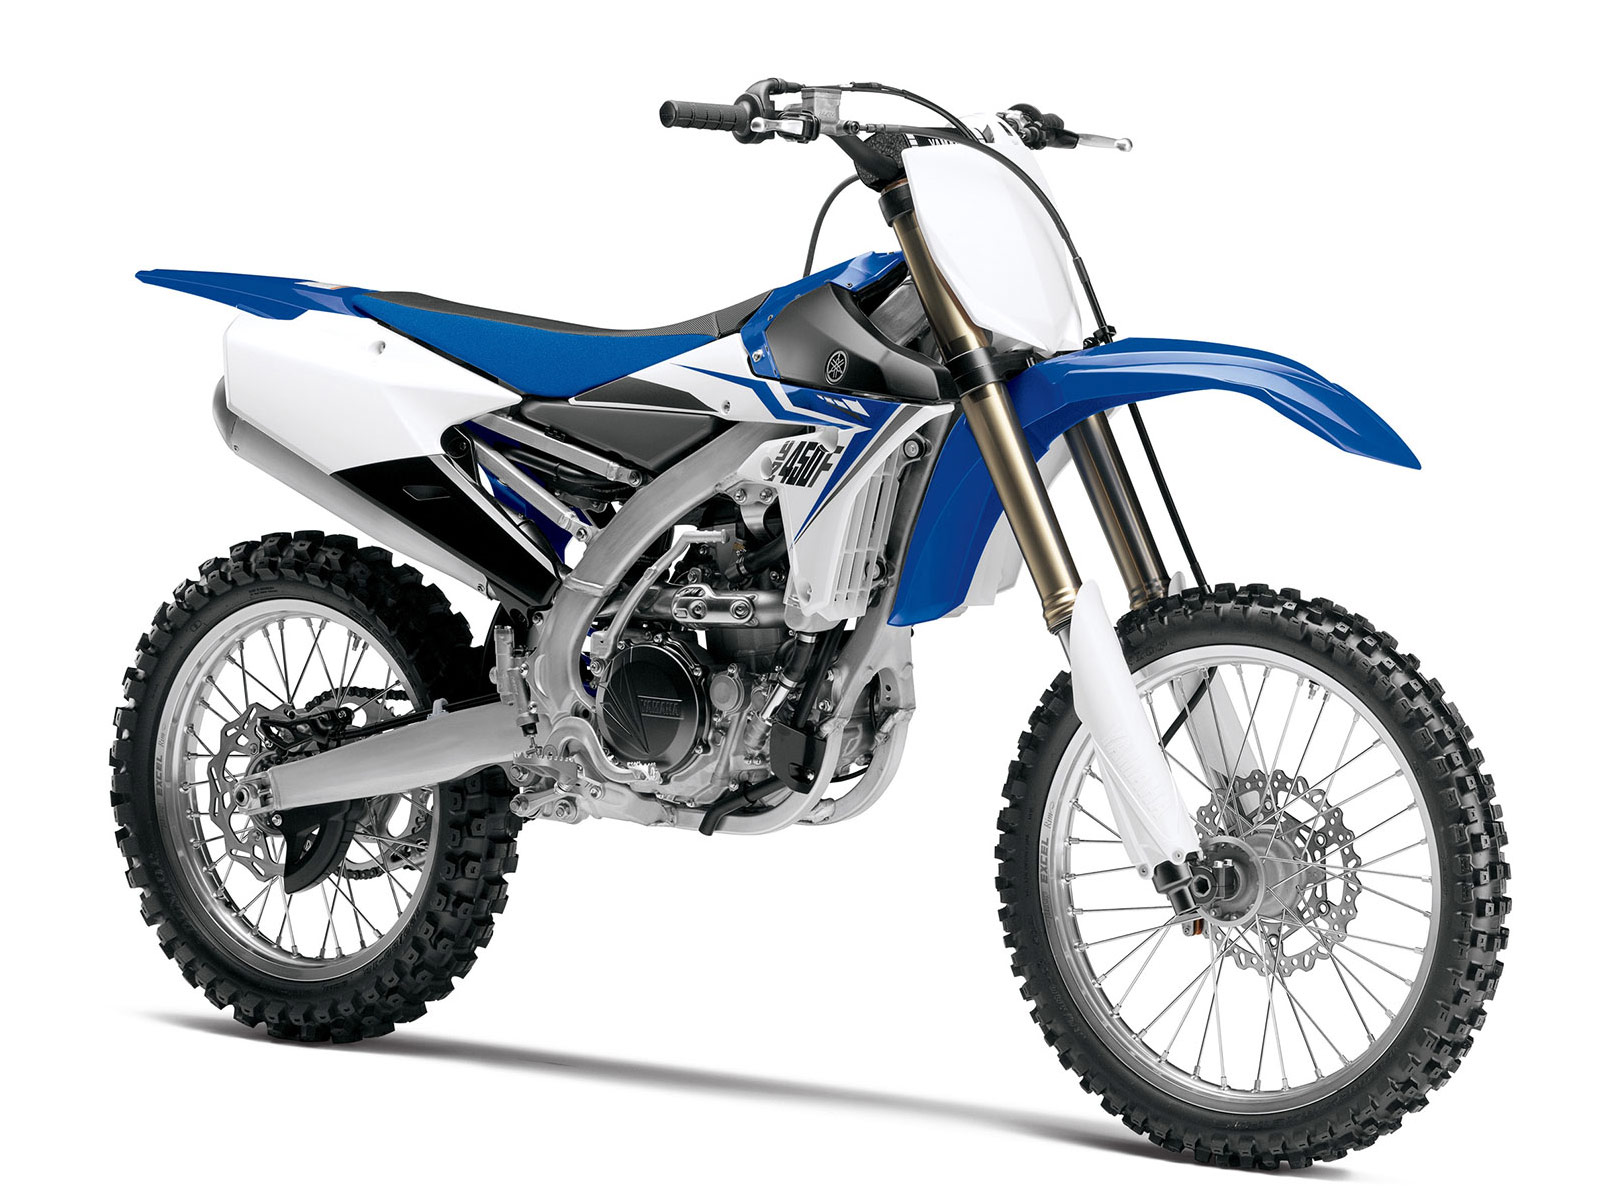 Motorcycle Insurance Information 2014 Yamaha Yz450f